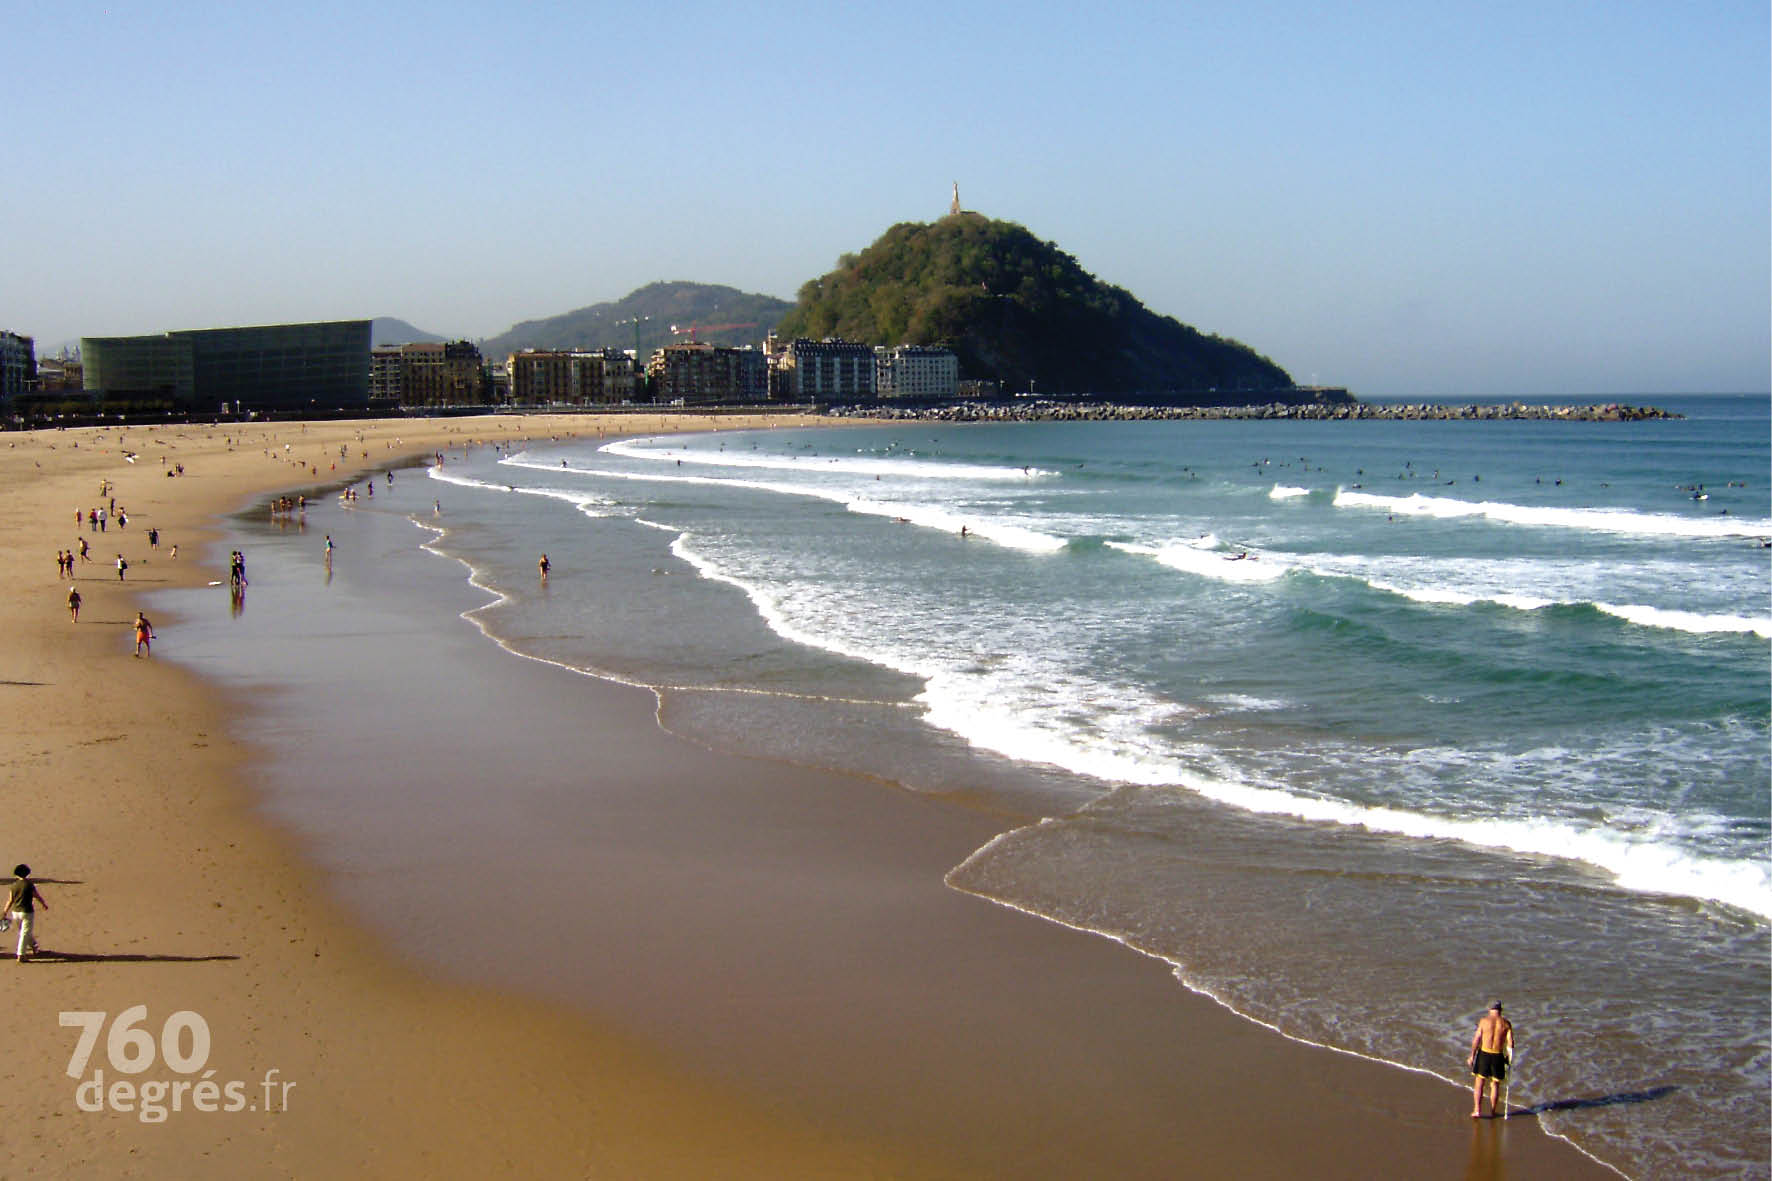 760degres-pays-basque-donostia-20